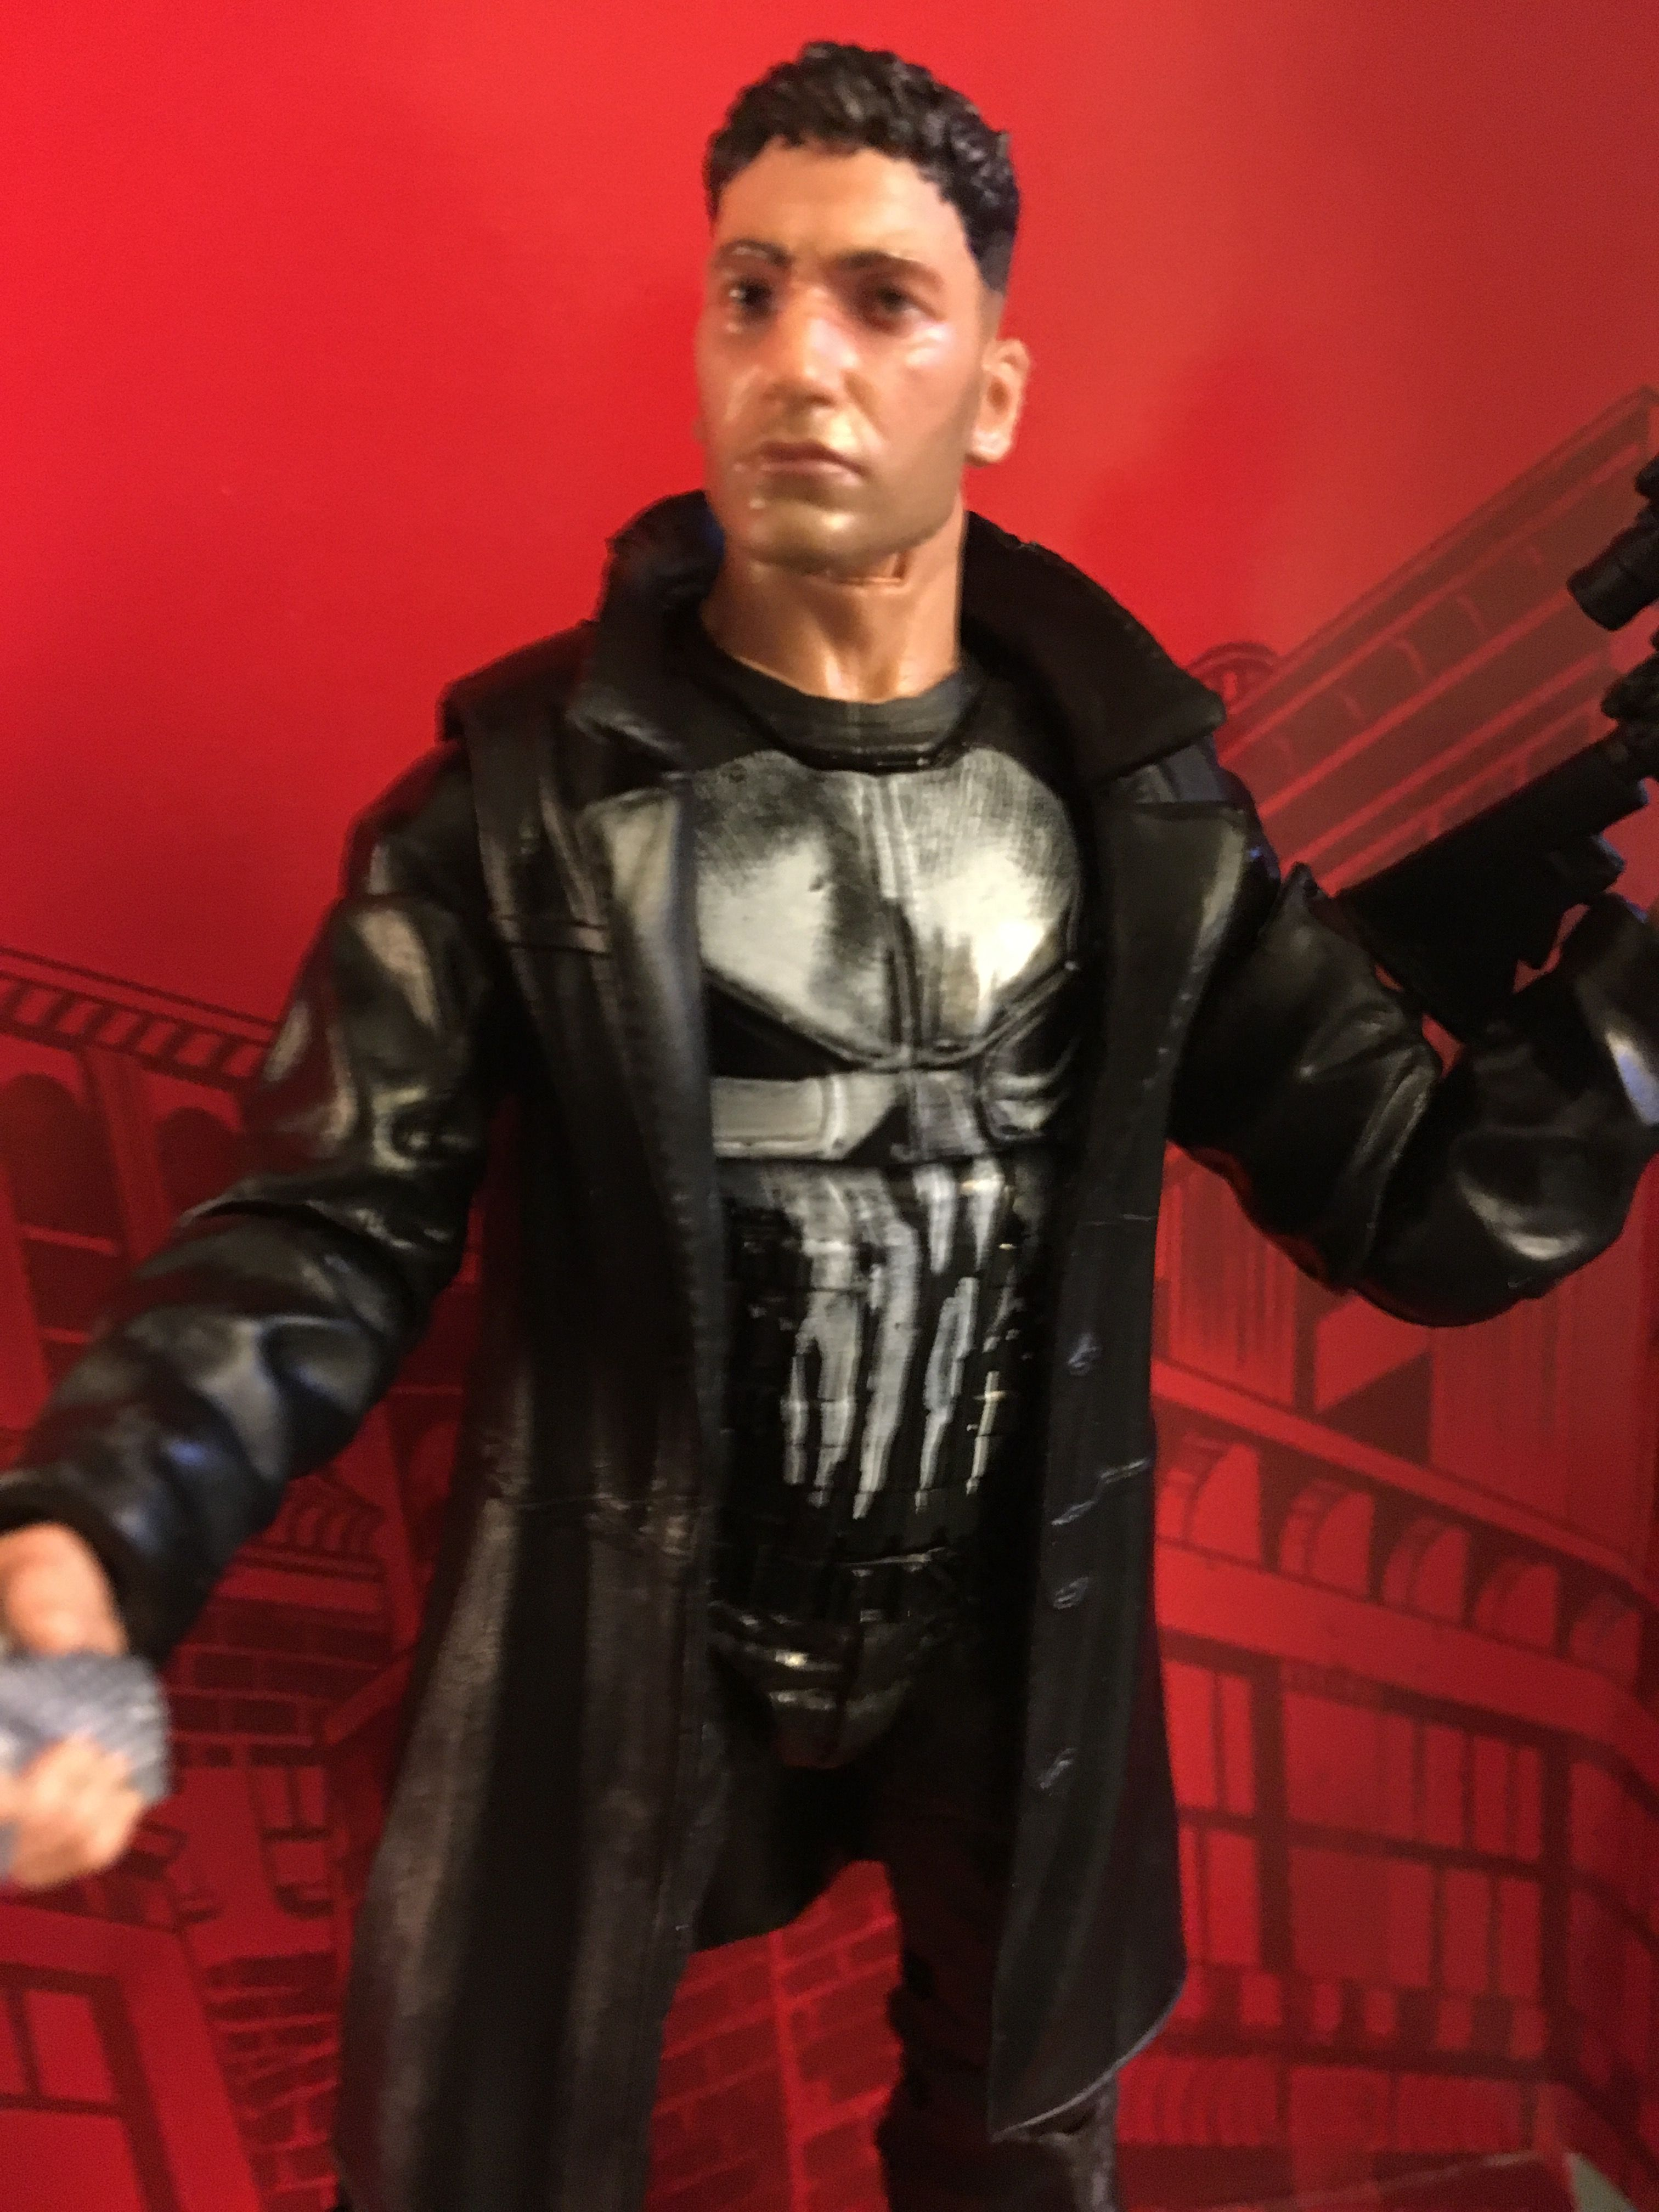 The Punisher Comic Book Characters Heroes For Hire Book Characters [ 4032 x 3024 Pixel ]